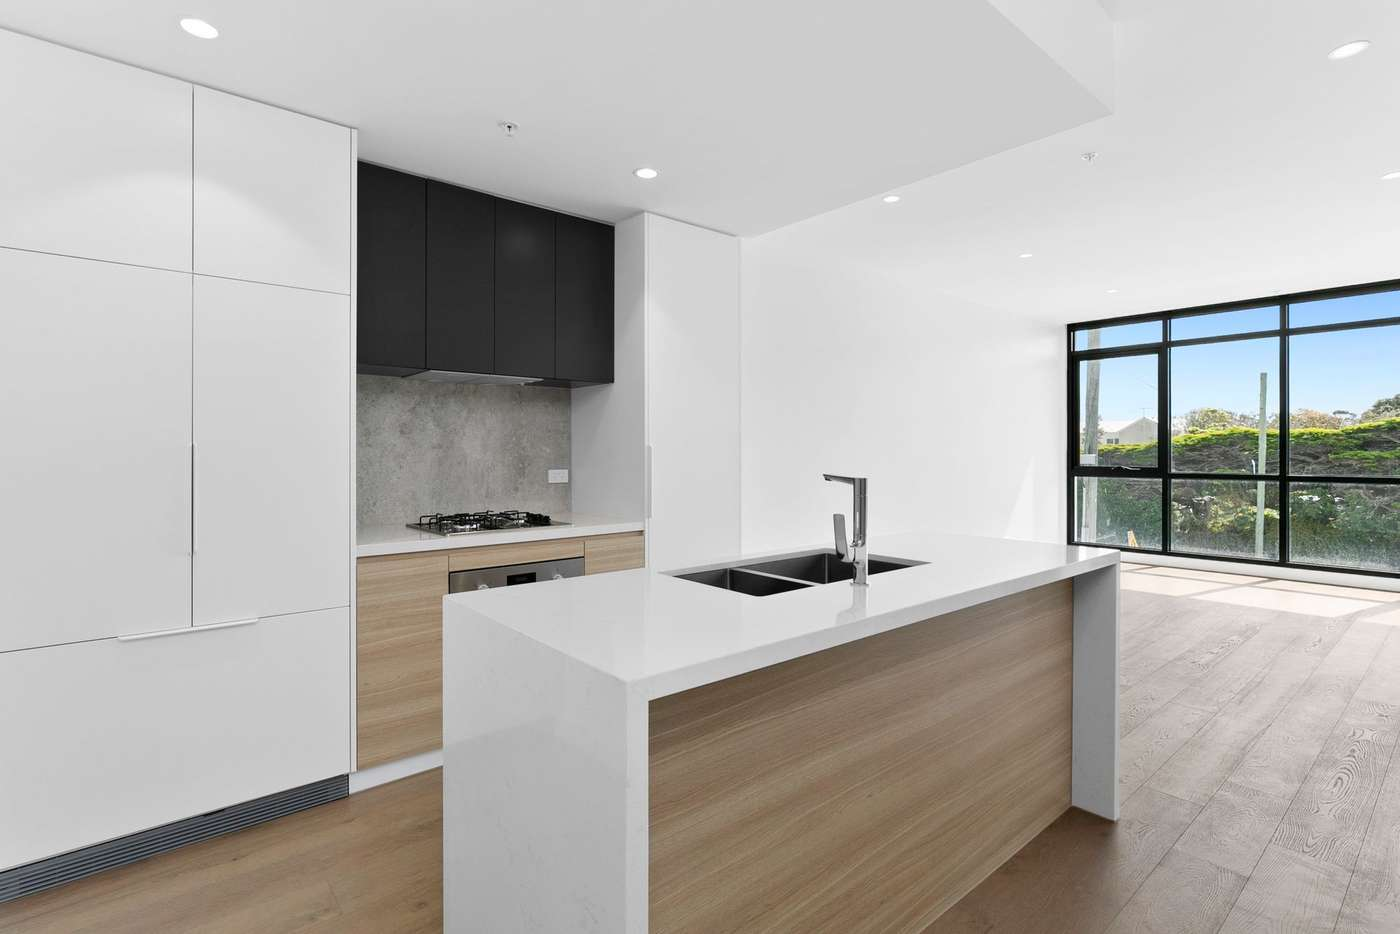 Main view of Homely apartment listing, 4/100 The Parade, Ocean Grove VIC 3226